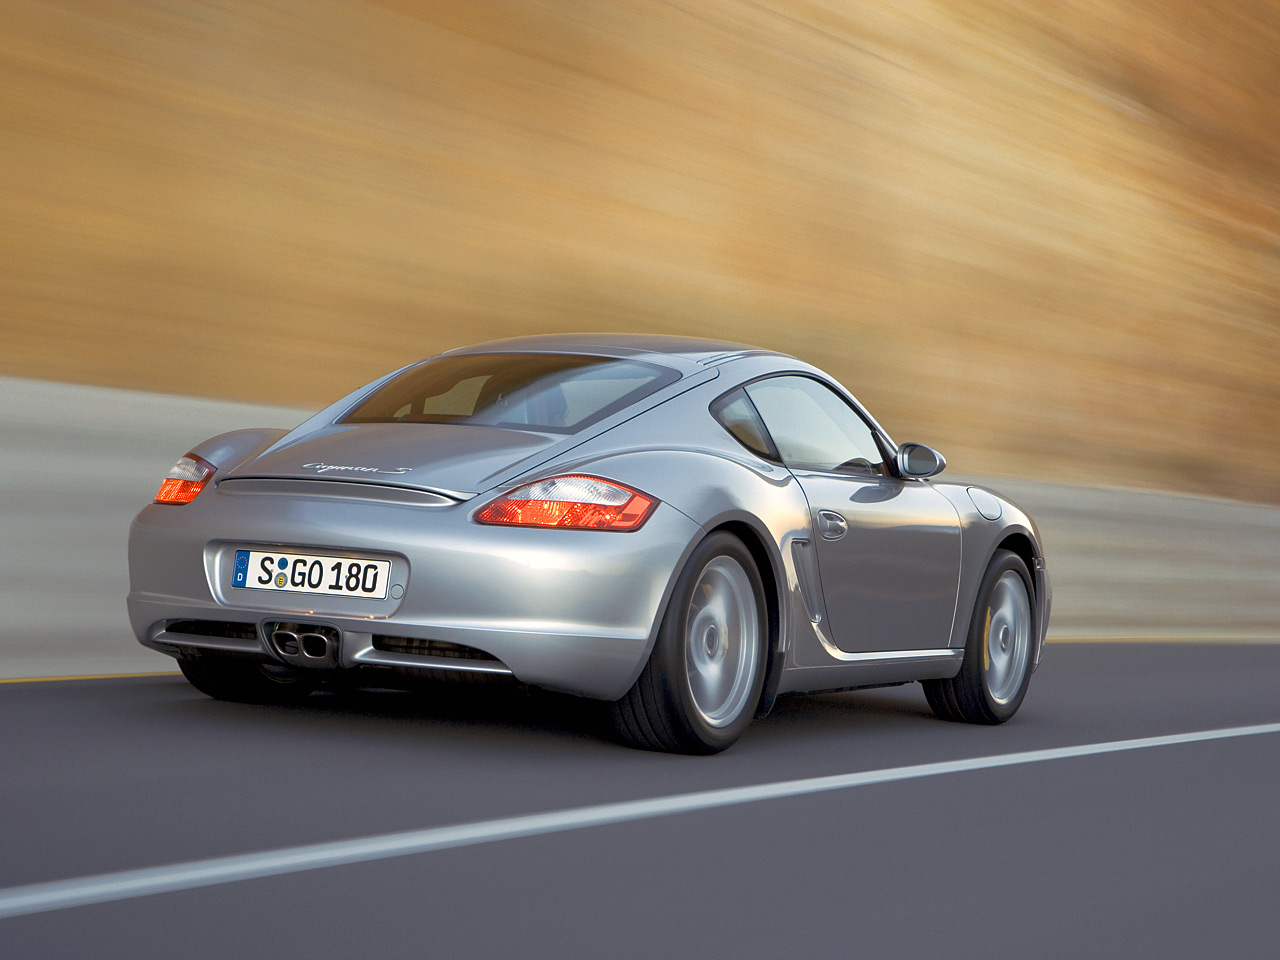 Porsche Car Cayman S Pictures And 224291 Wallpaper wallpaper